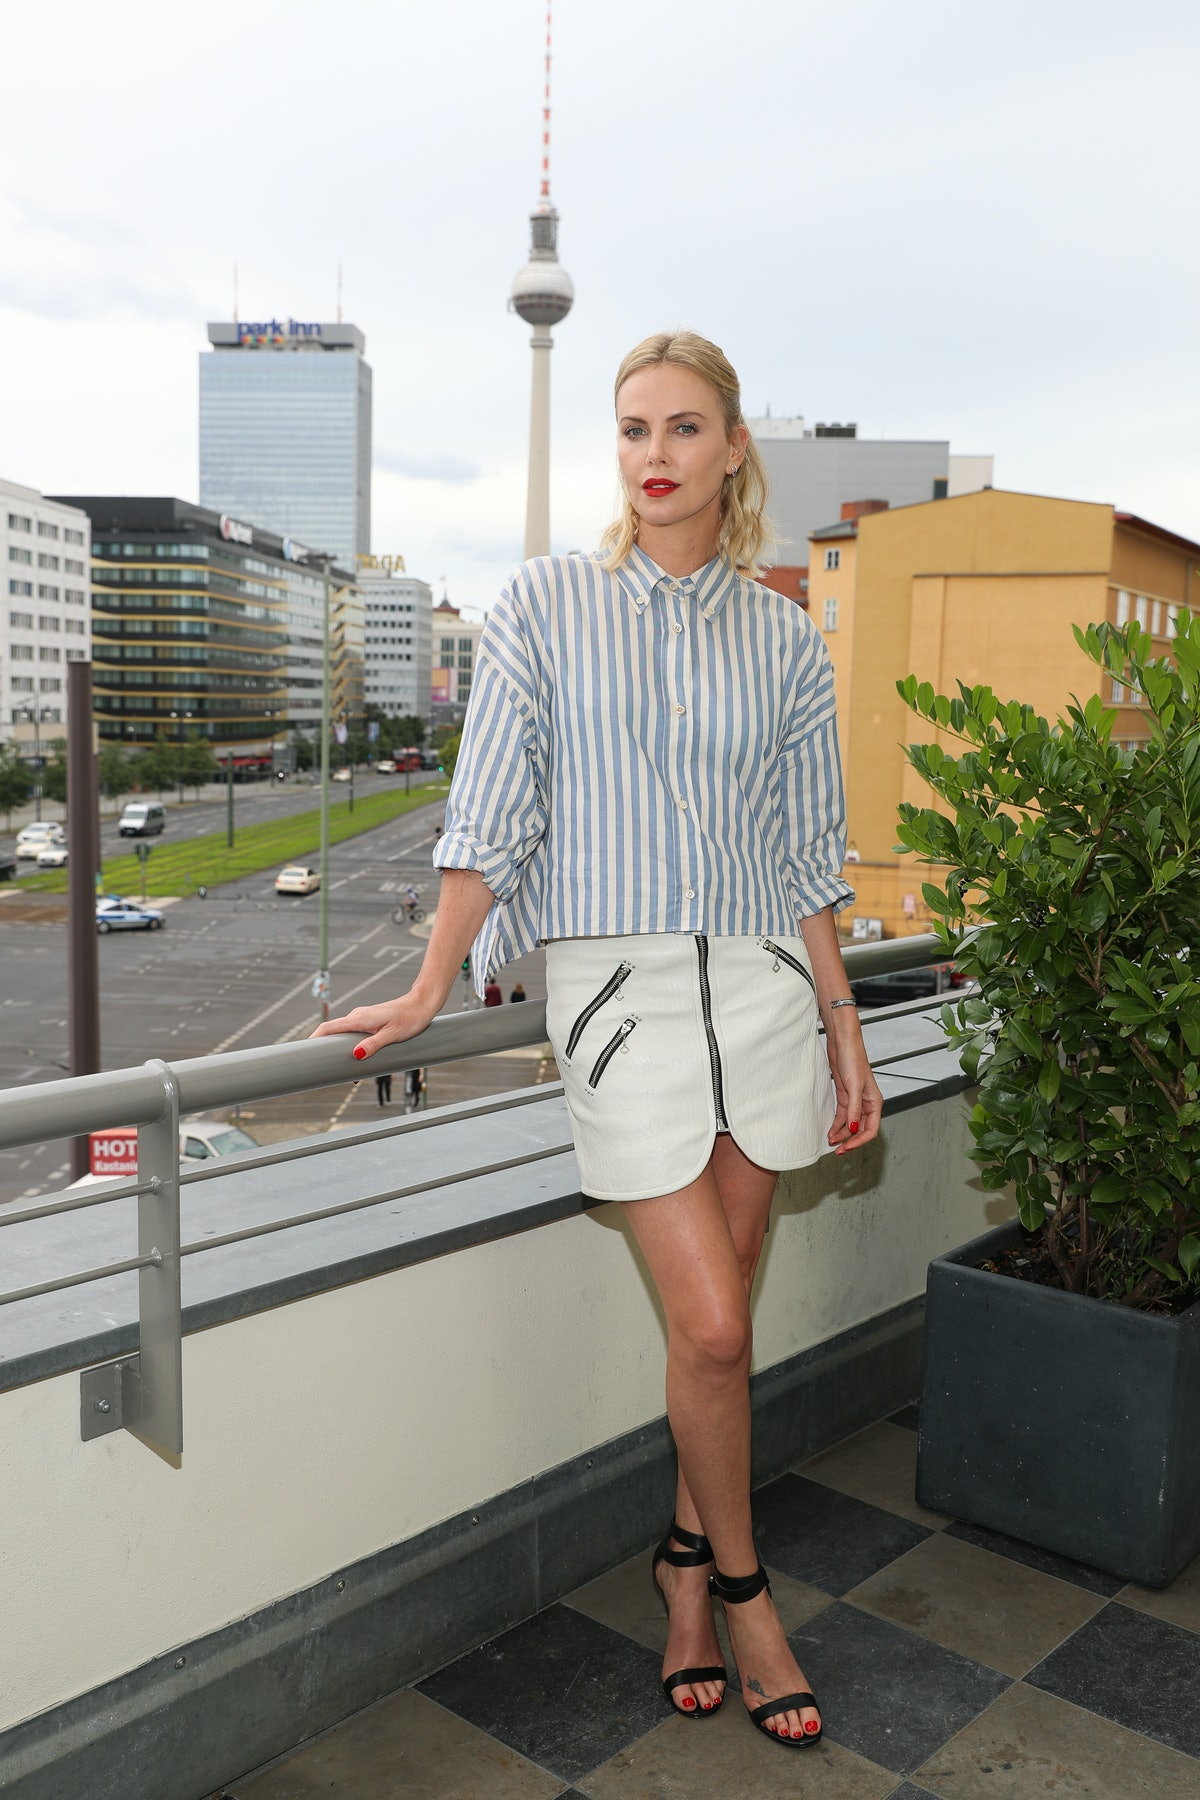 Charlize Theron Promotes 'Atomic Blonde' In Berlin